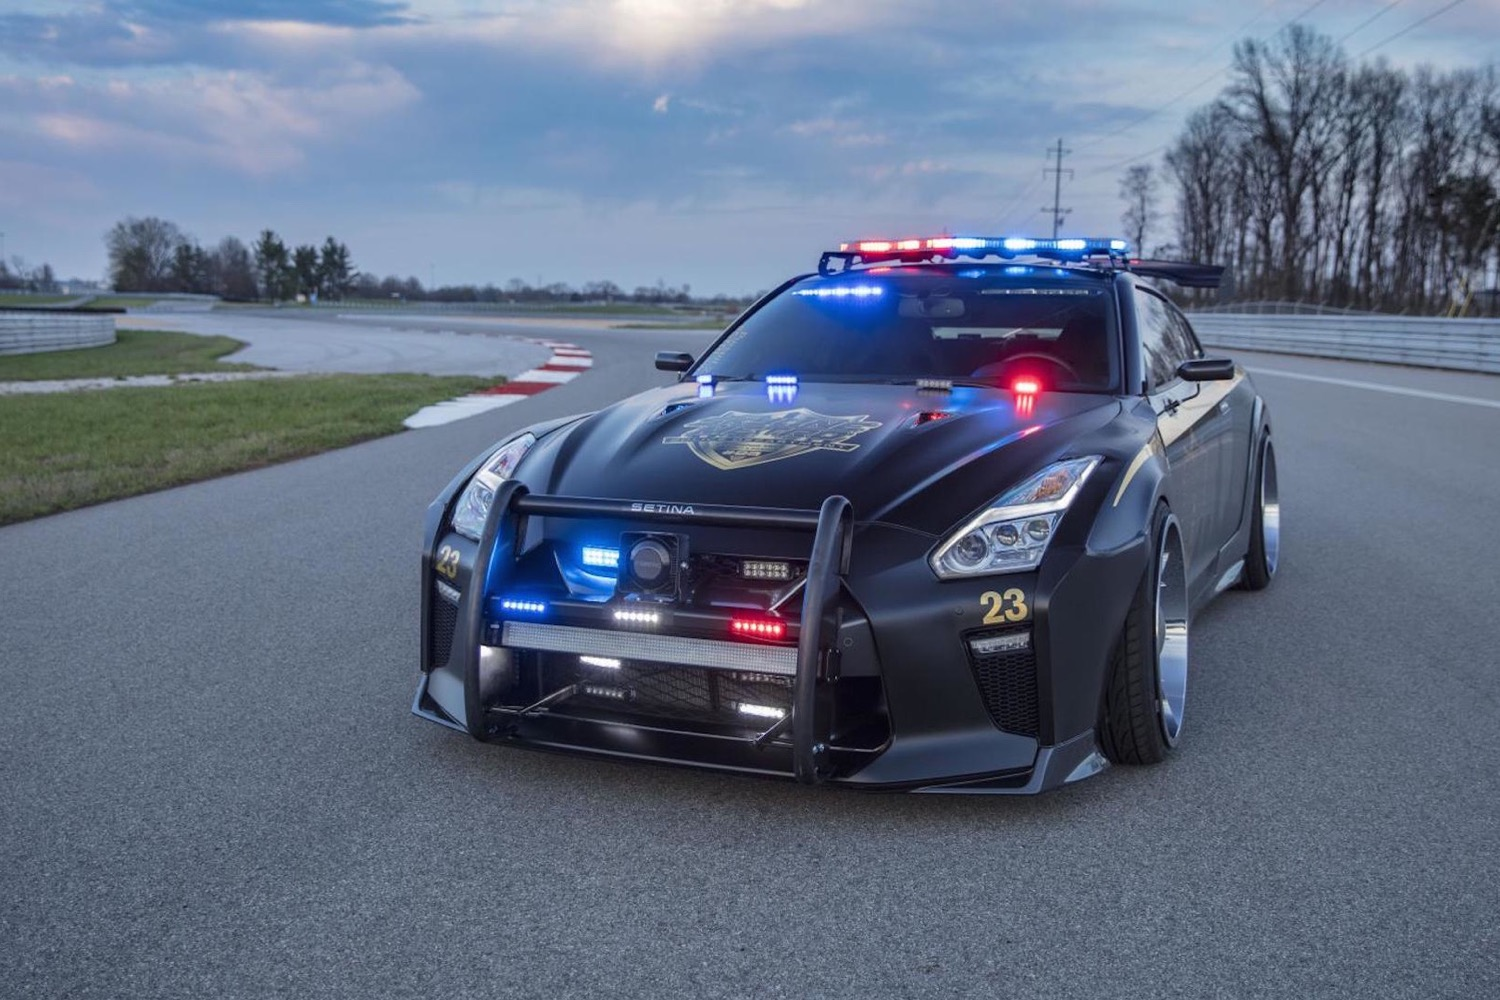 Meet Copzilla A Tricked Out Nissan Gt R Built To Fight